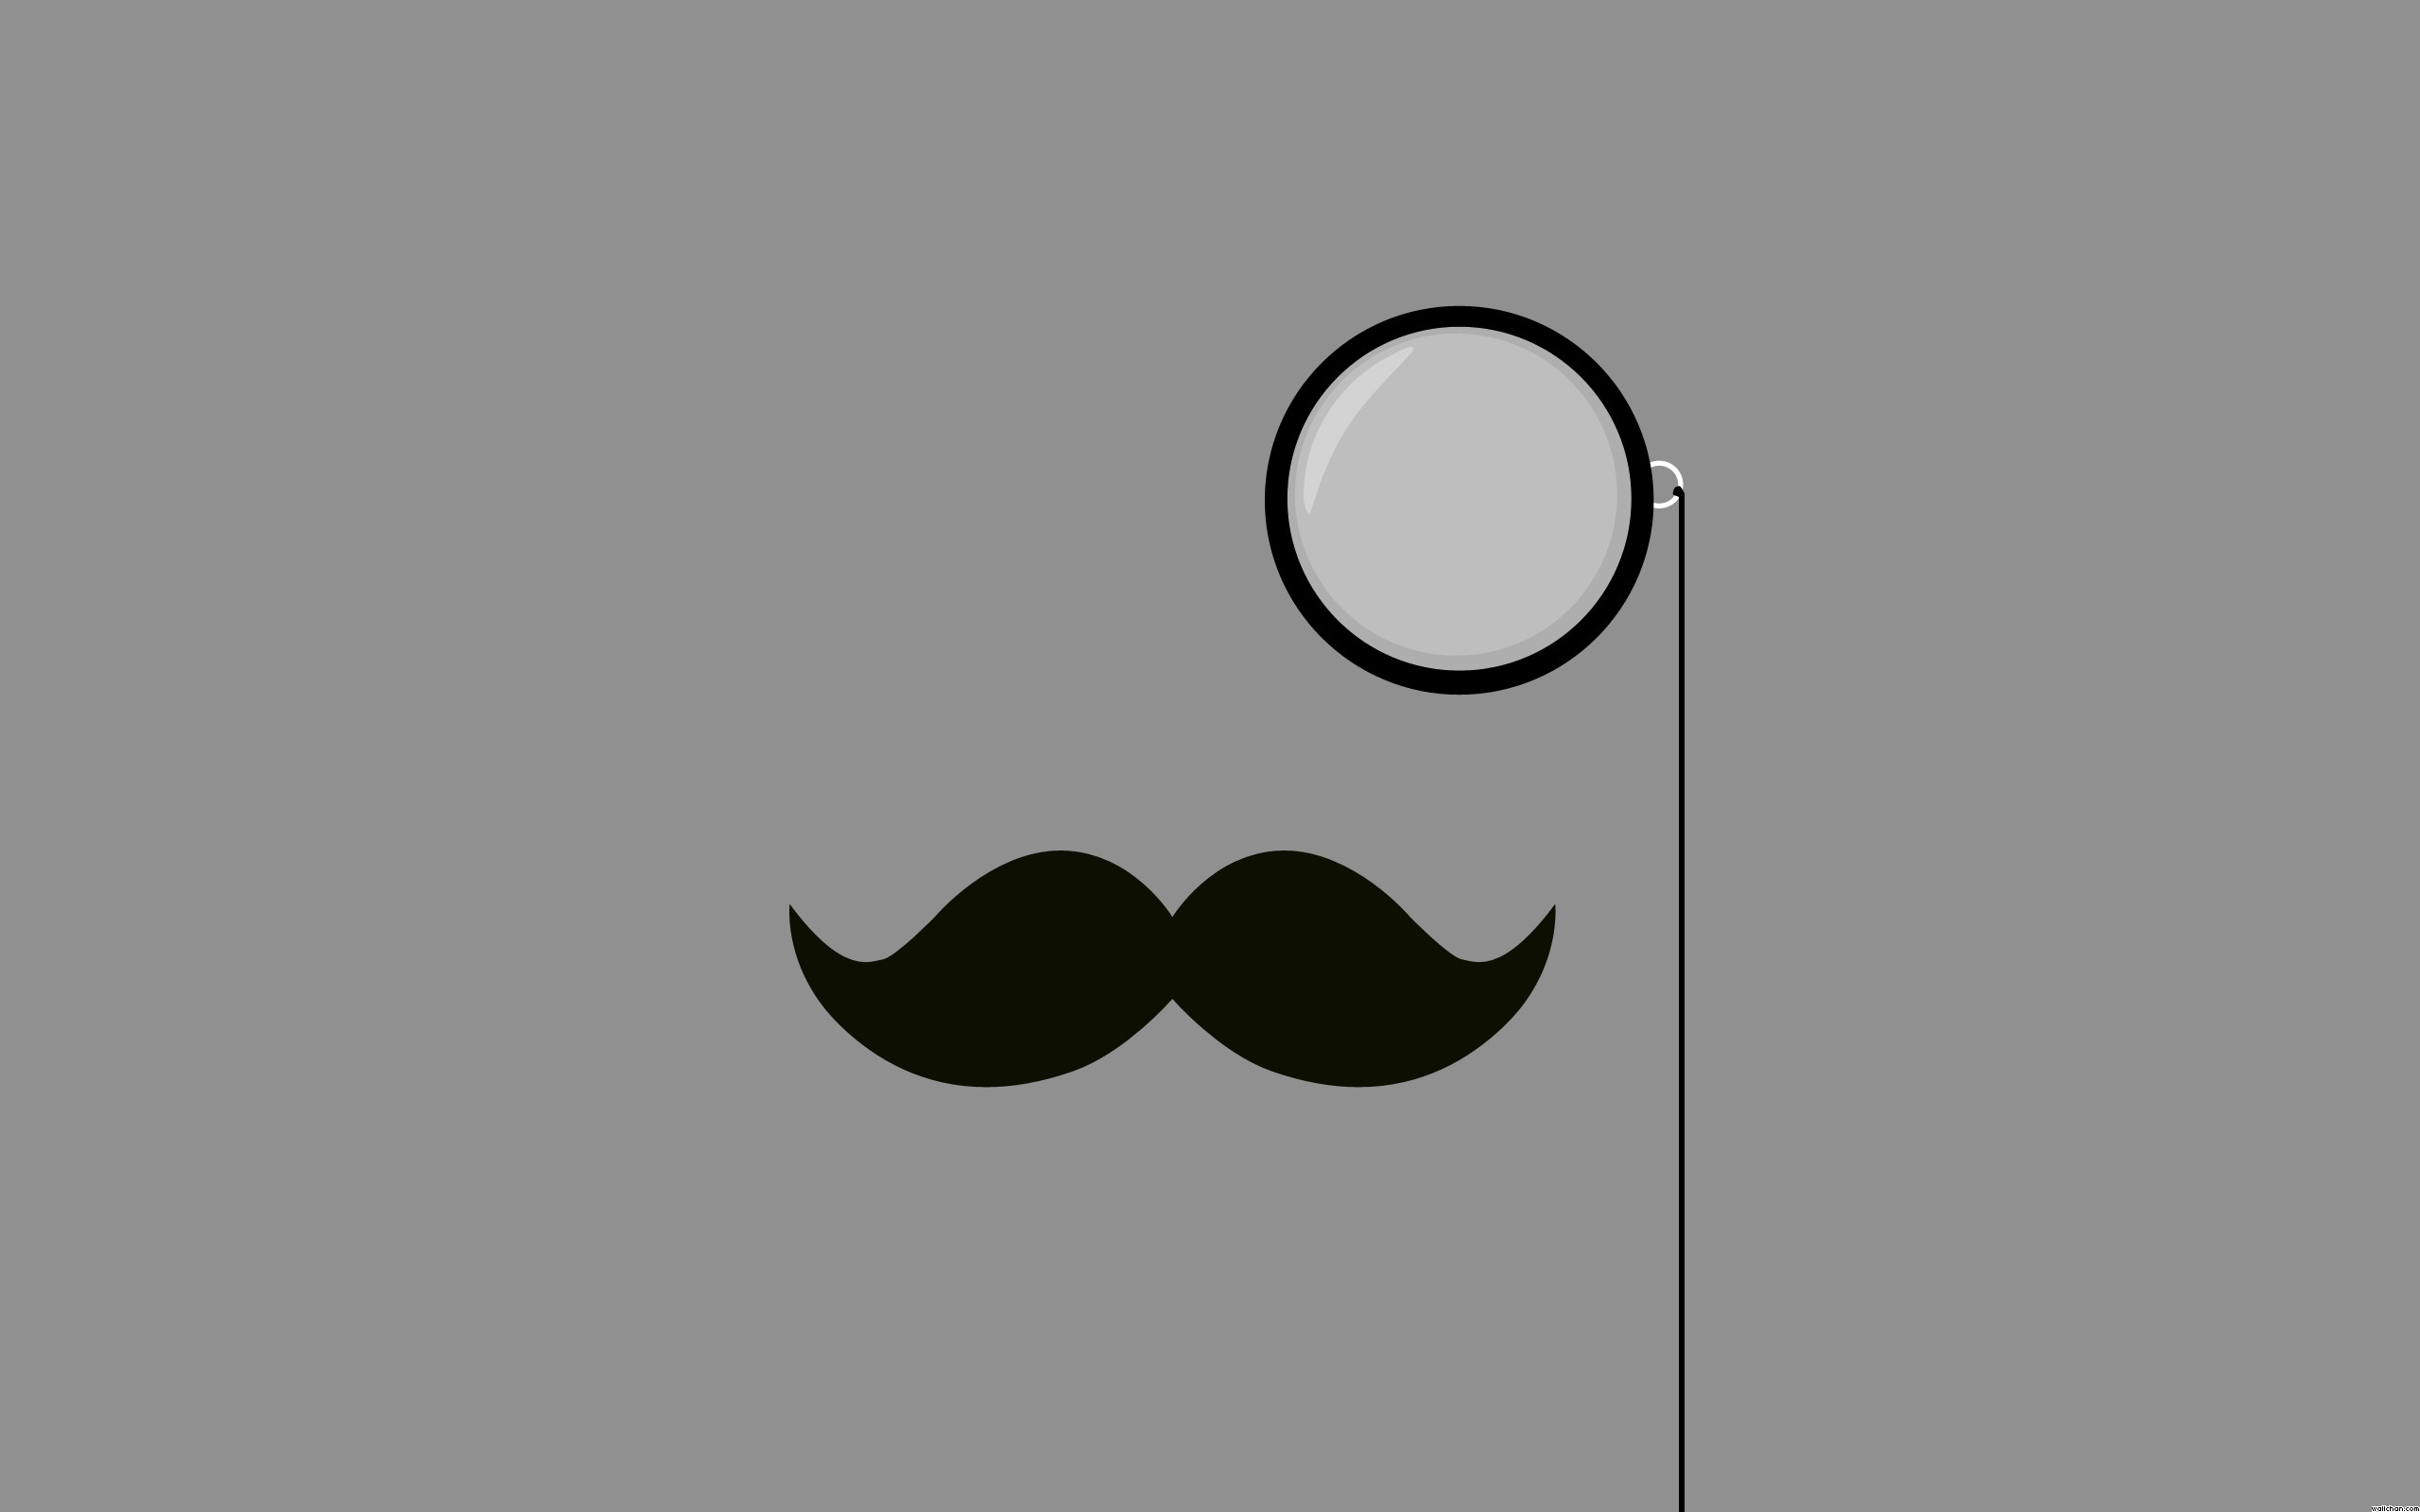 Cute Mustache Wallpapers On Tumblr 1